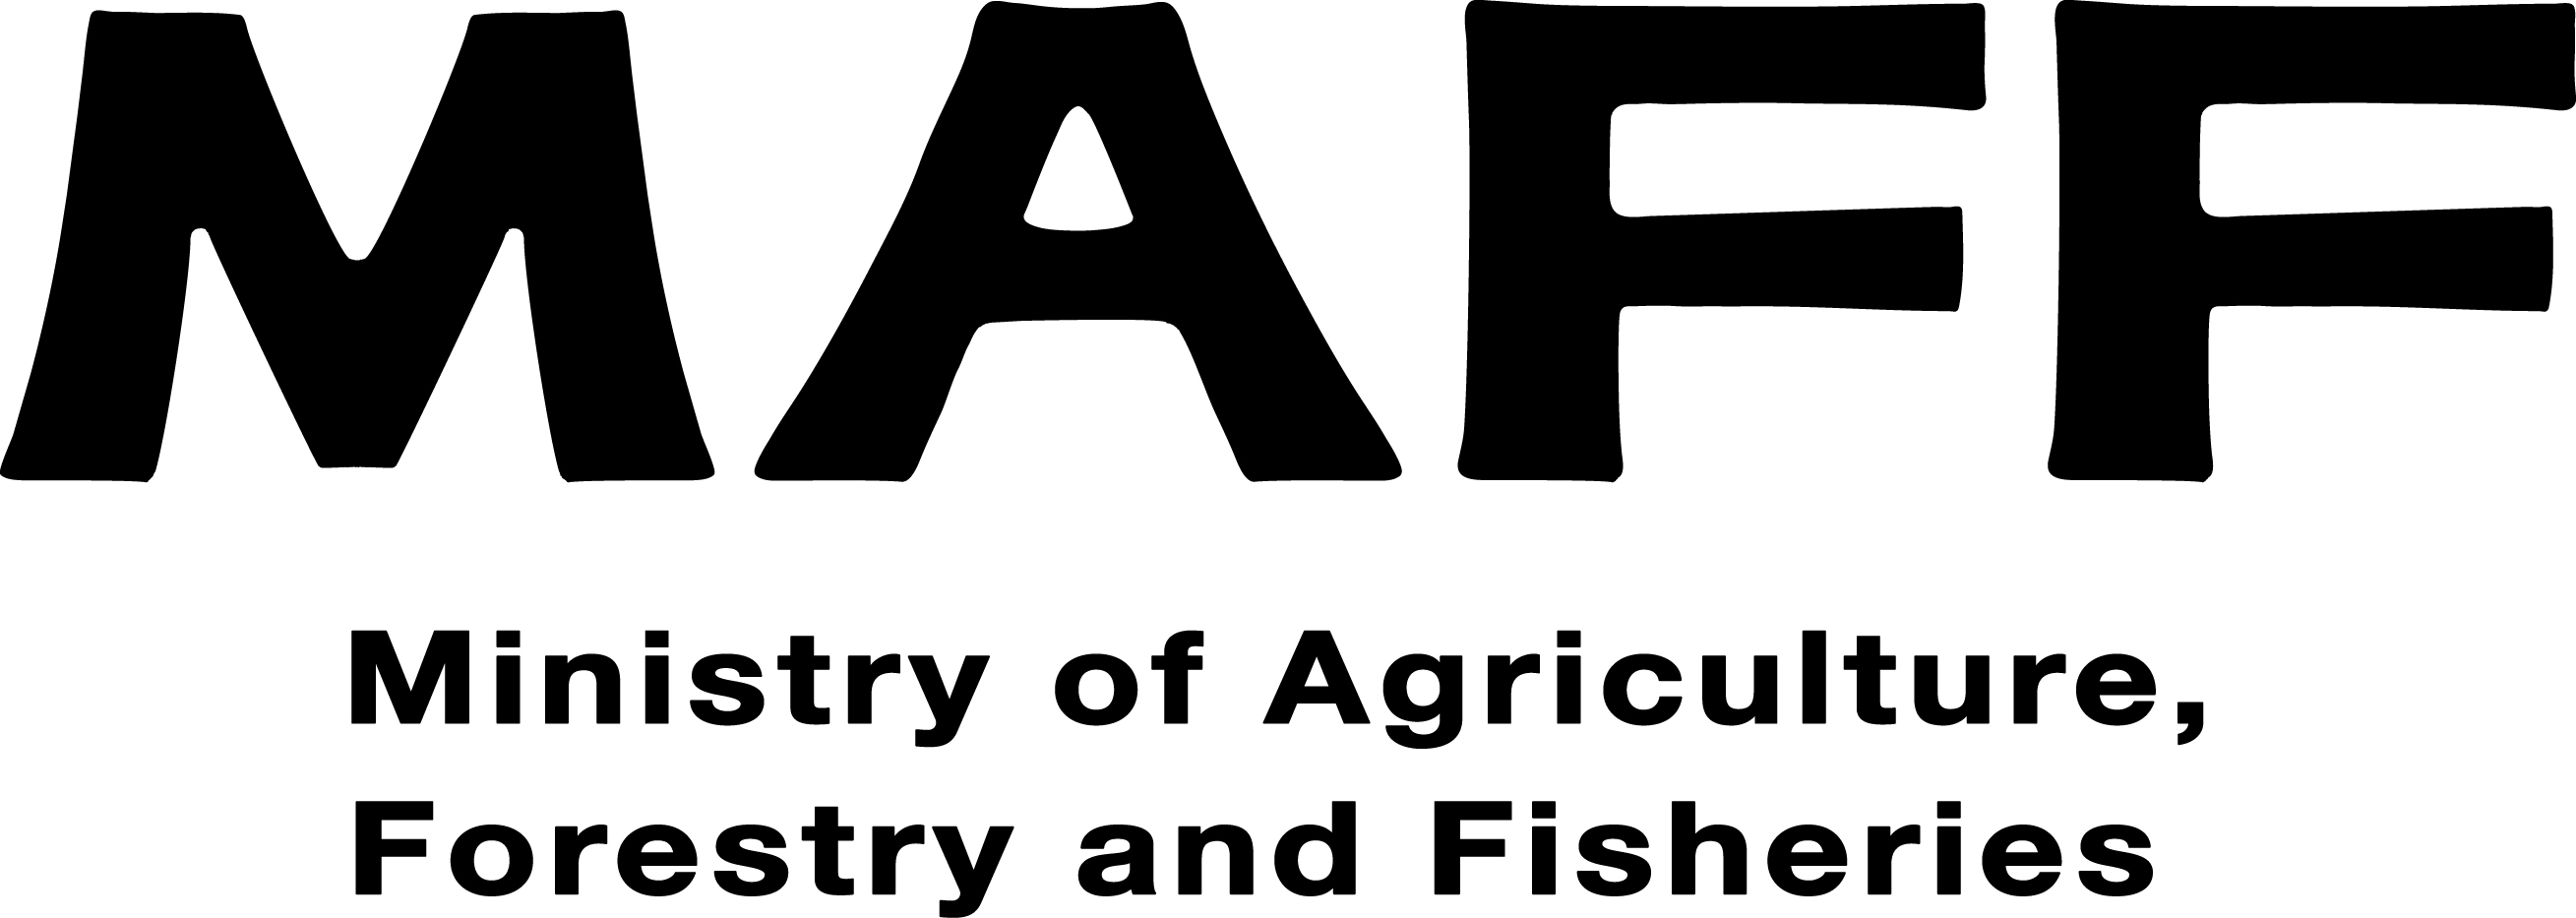 MAFF Ministry of Agriculture, Forestry and Fisheries